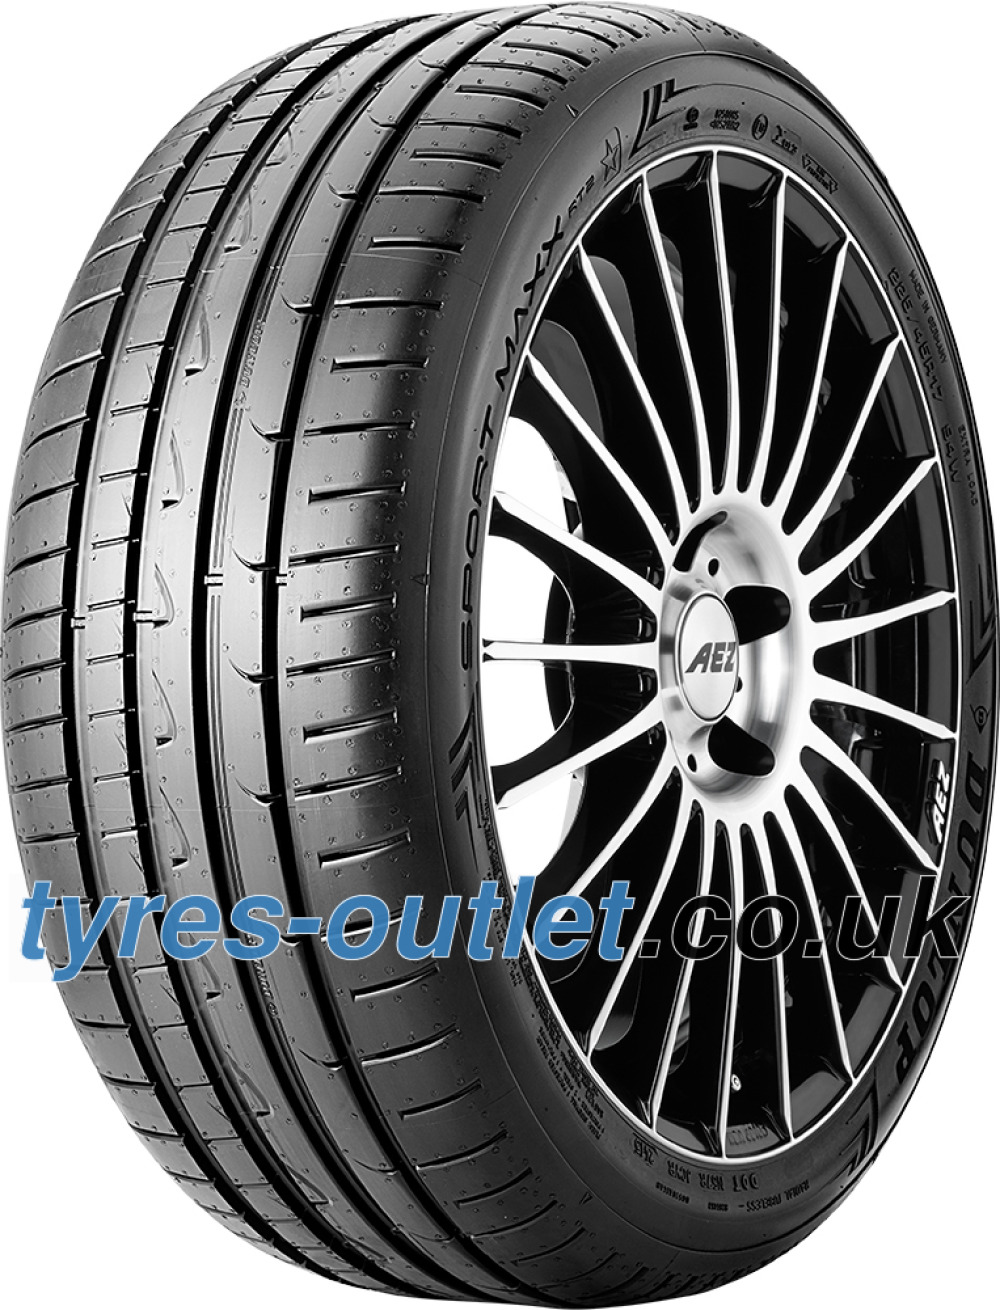 Dunlop Sport Maxx RT2 ( 255/40 R18 99Y XL with rim protection (MFS) )